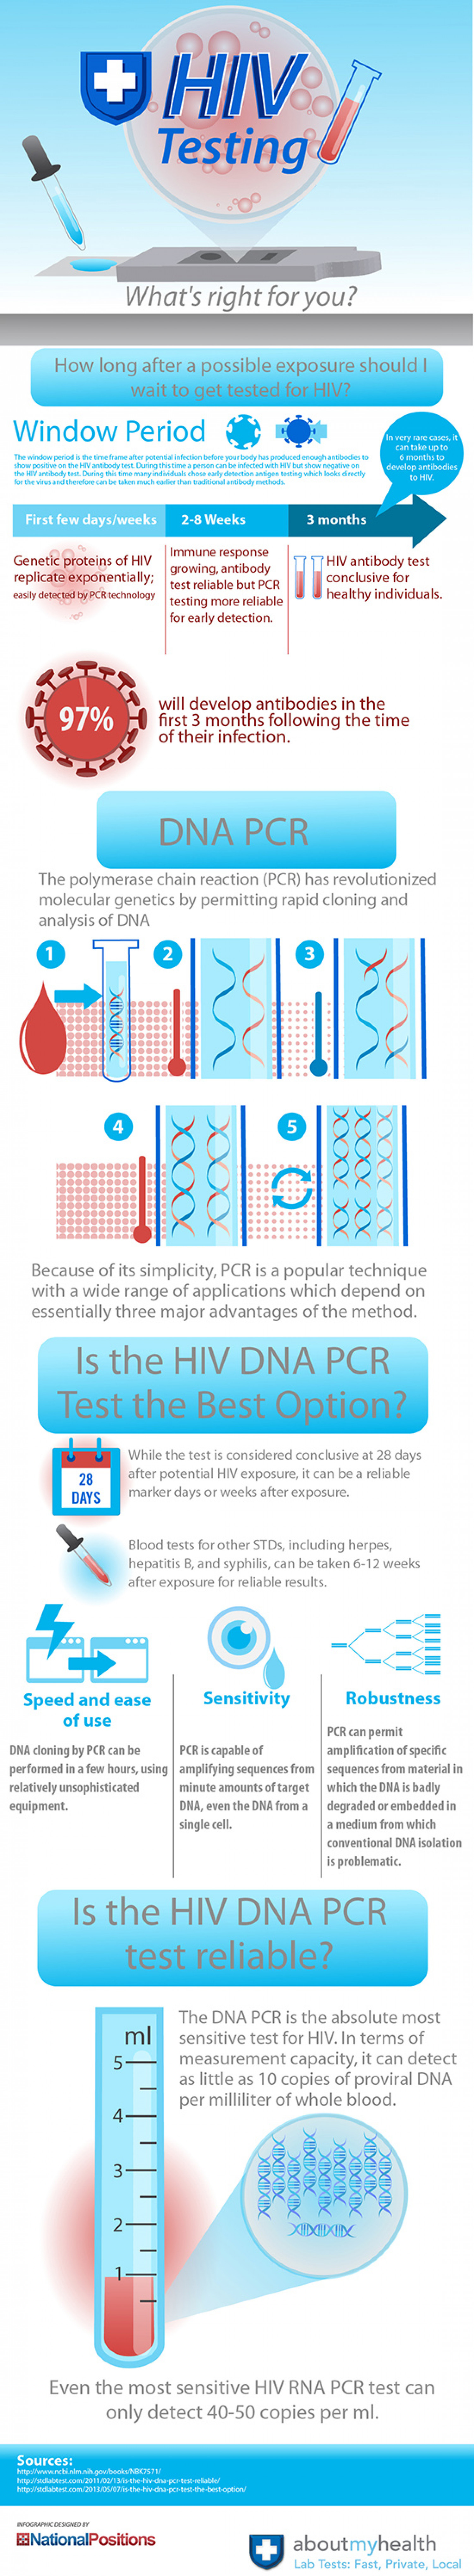 HIV DNA PCR Testing Infographic